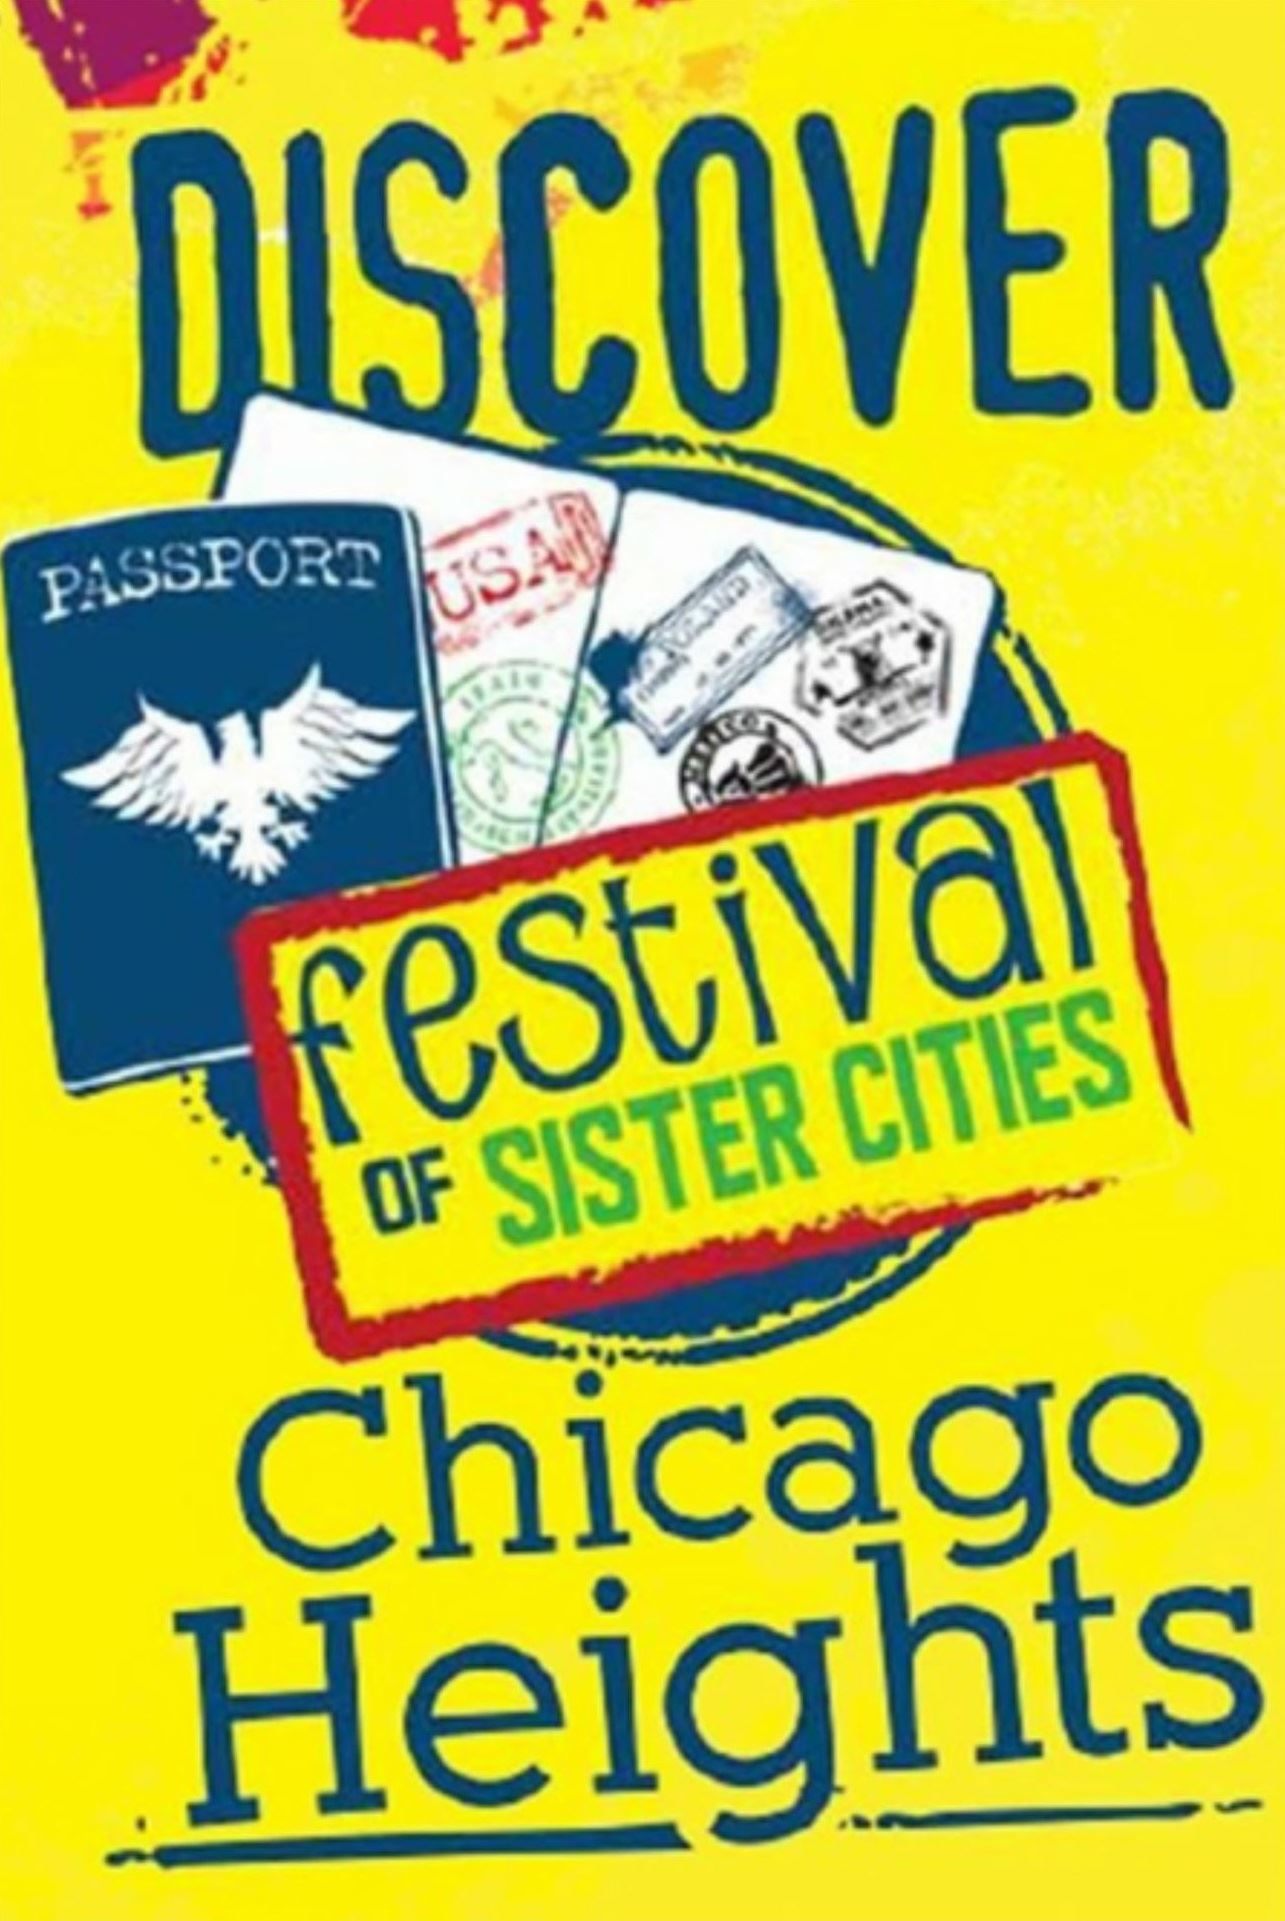 sister cities logo